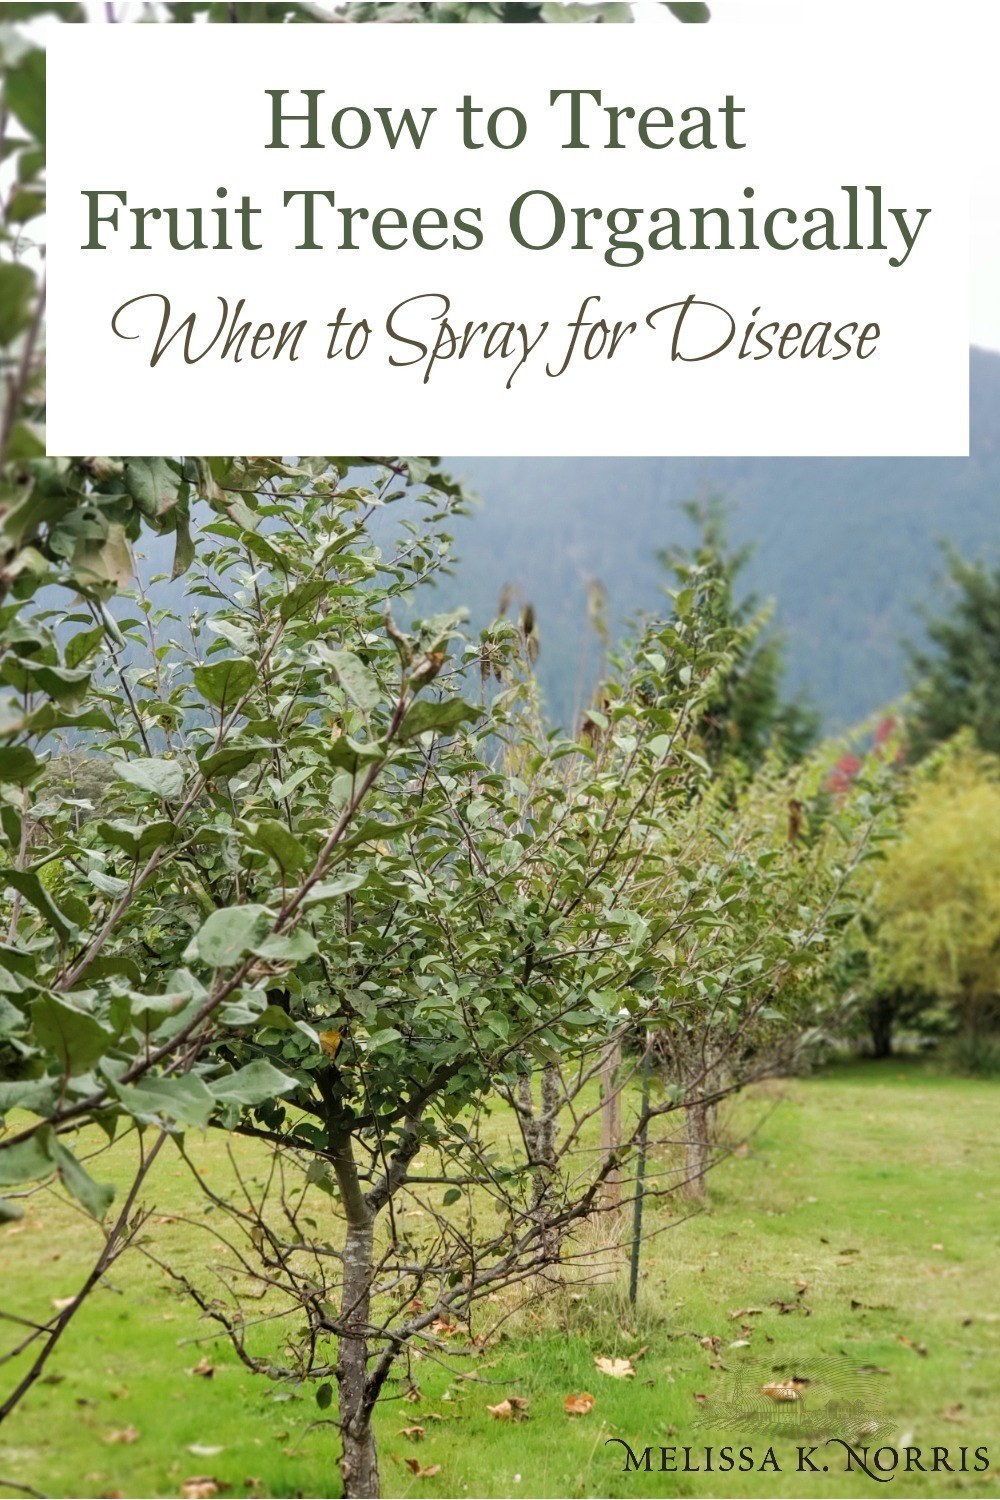 Learn how to treat fruit trees organically and when to spray for disease and pests. Plus, what you can spray on your fruit trees naturally to help with diseases and insects in a home orchard setting.